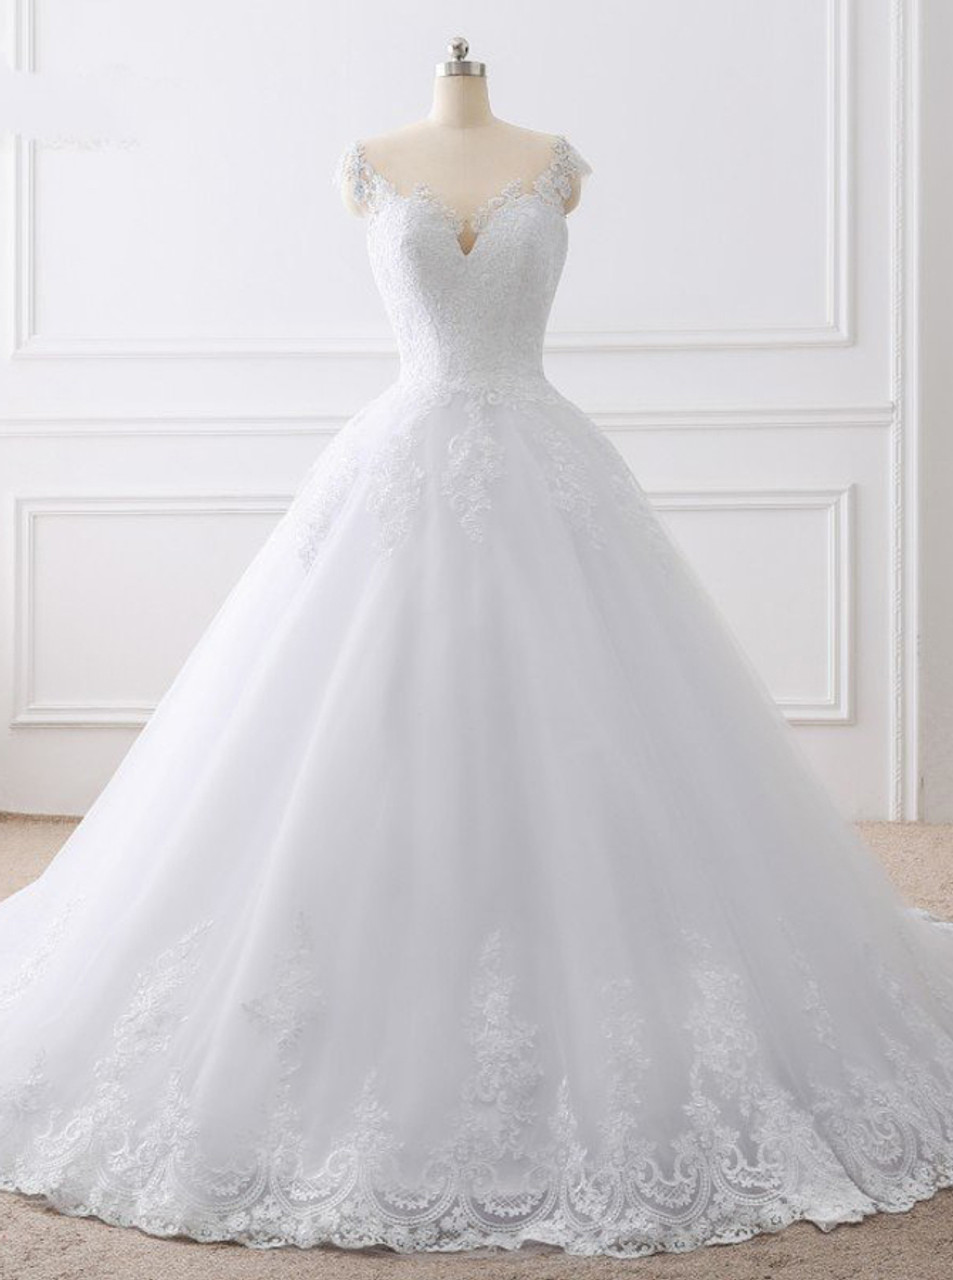 Princess Ball Gown Wedding Dresses Classic Bridal Gown 11700 Landress Co Uk,Wedding Dresses With Sleeves And Pockets